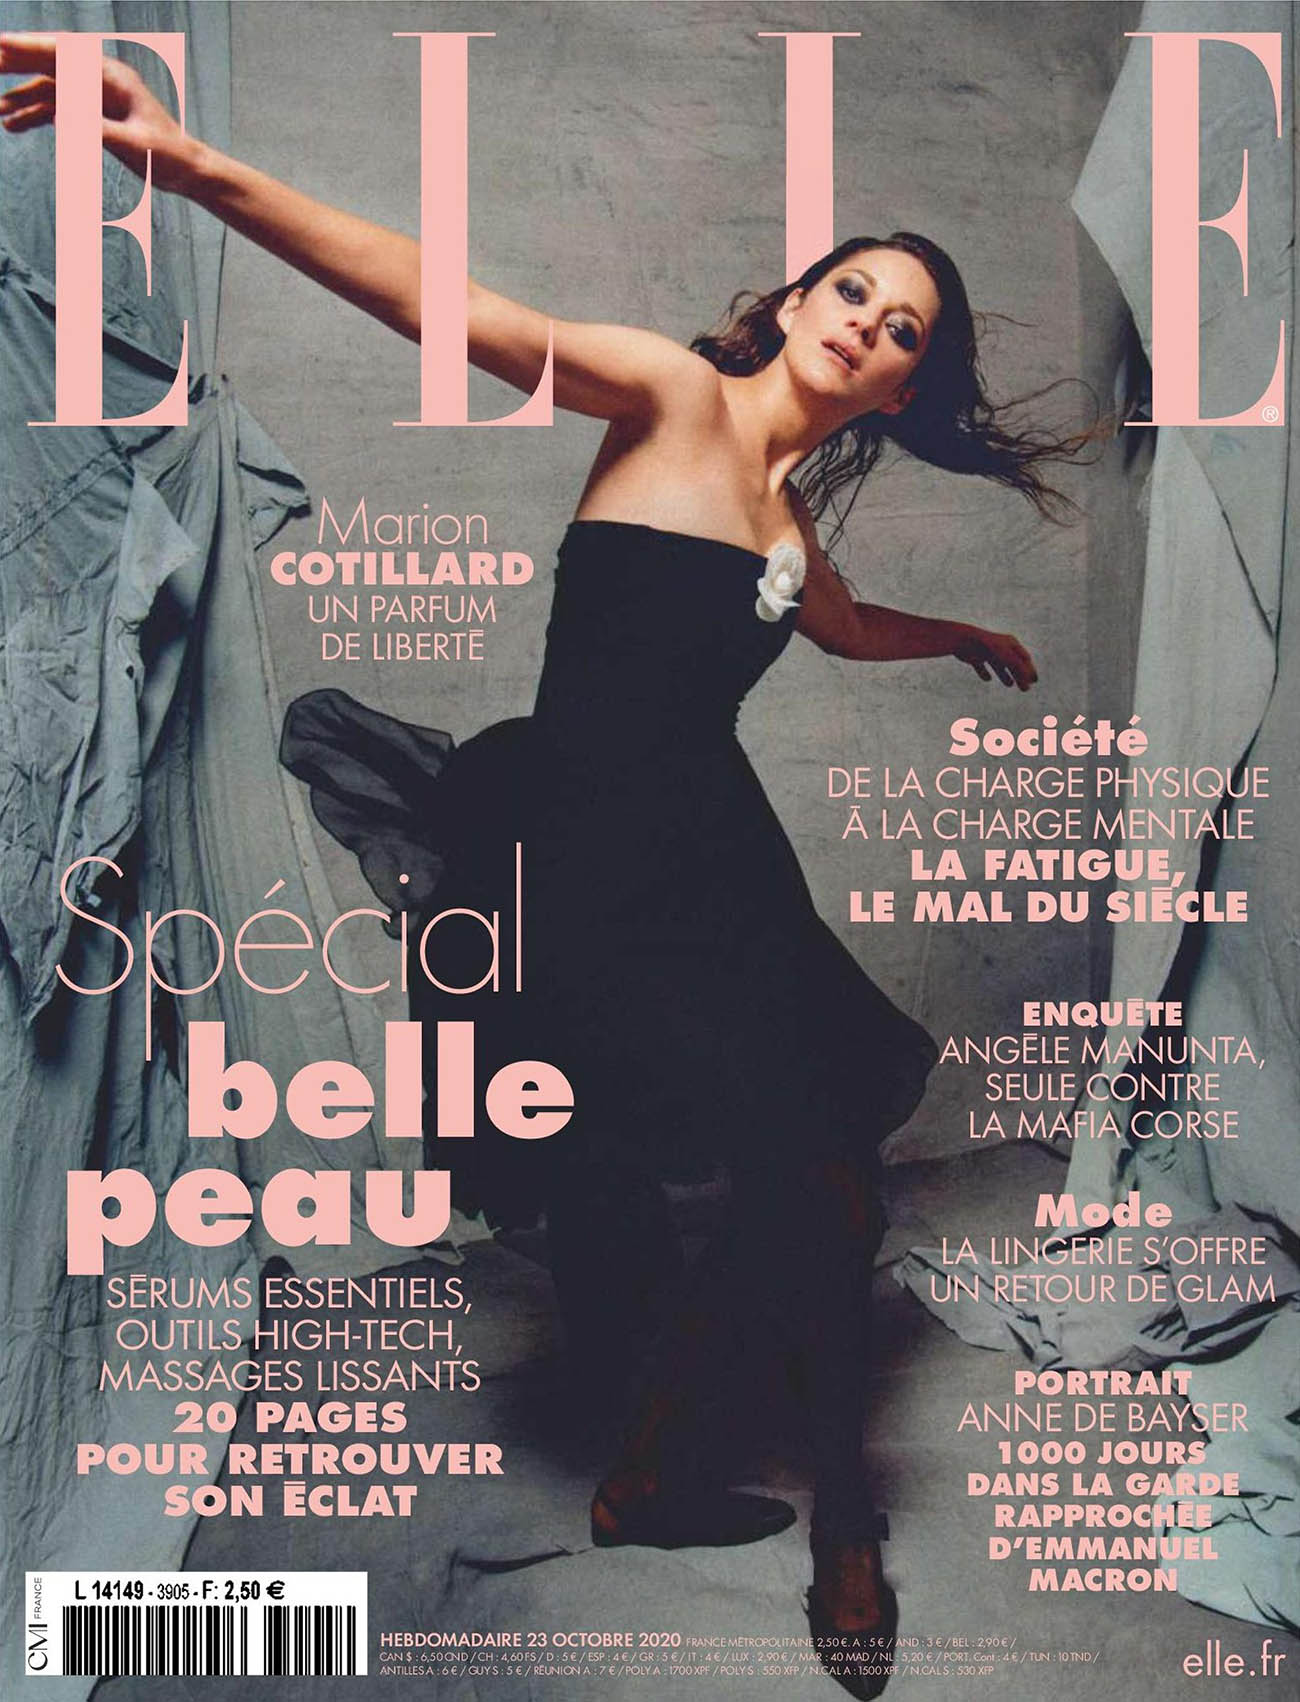 Marion Cotillard covers Elle France October 23rd, 2020 by Louie Banks